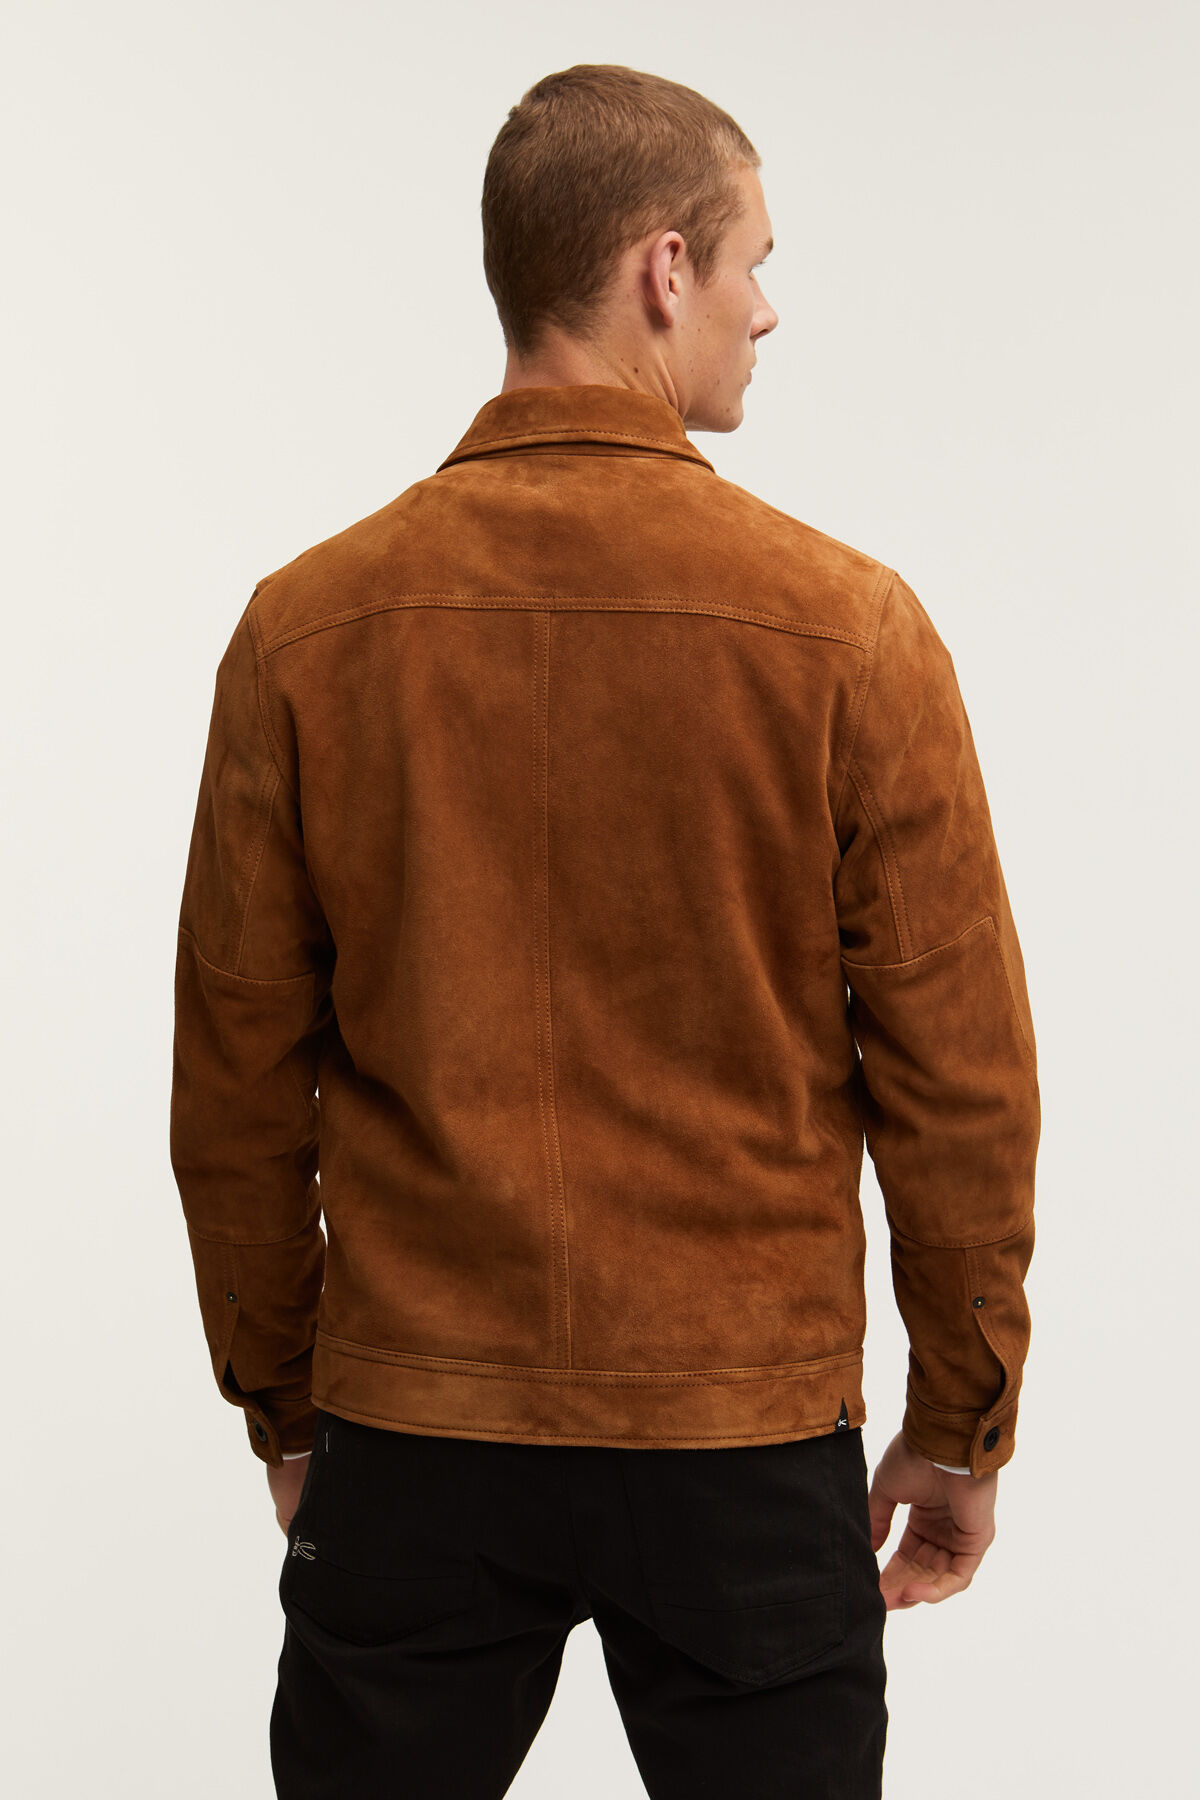 WINSTON SUEDE JACKET Chrome-Free Goat Suede - Boxy Fit